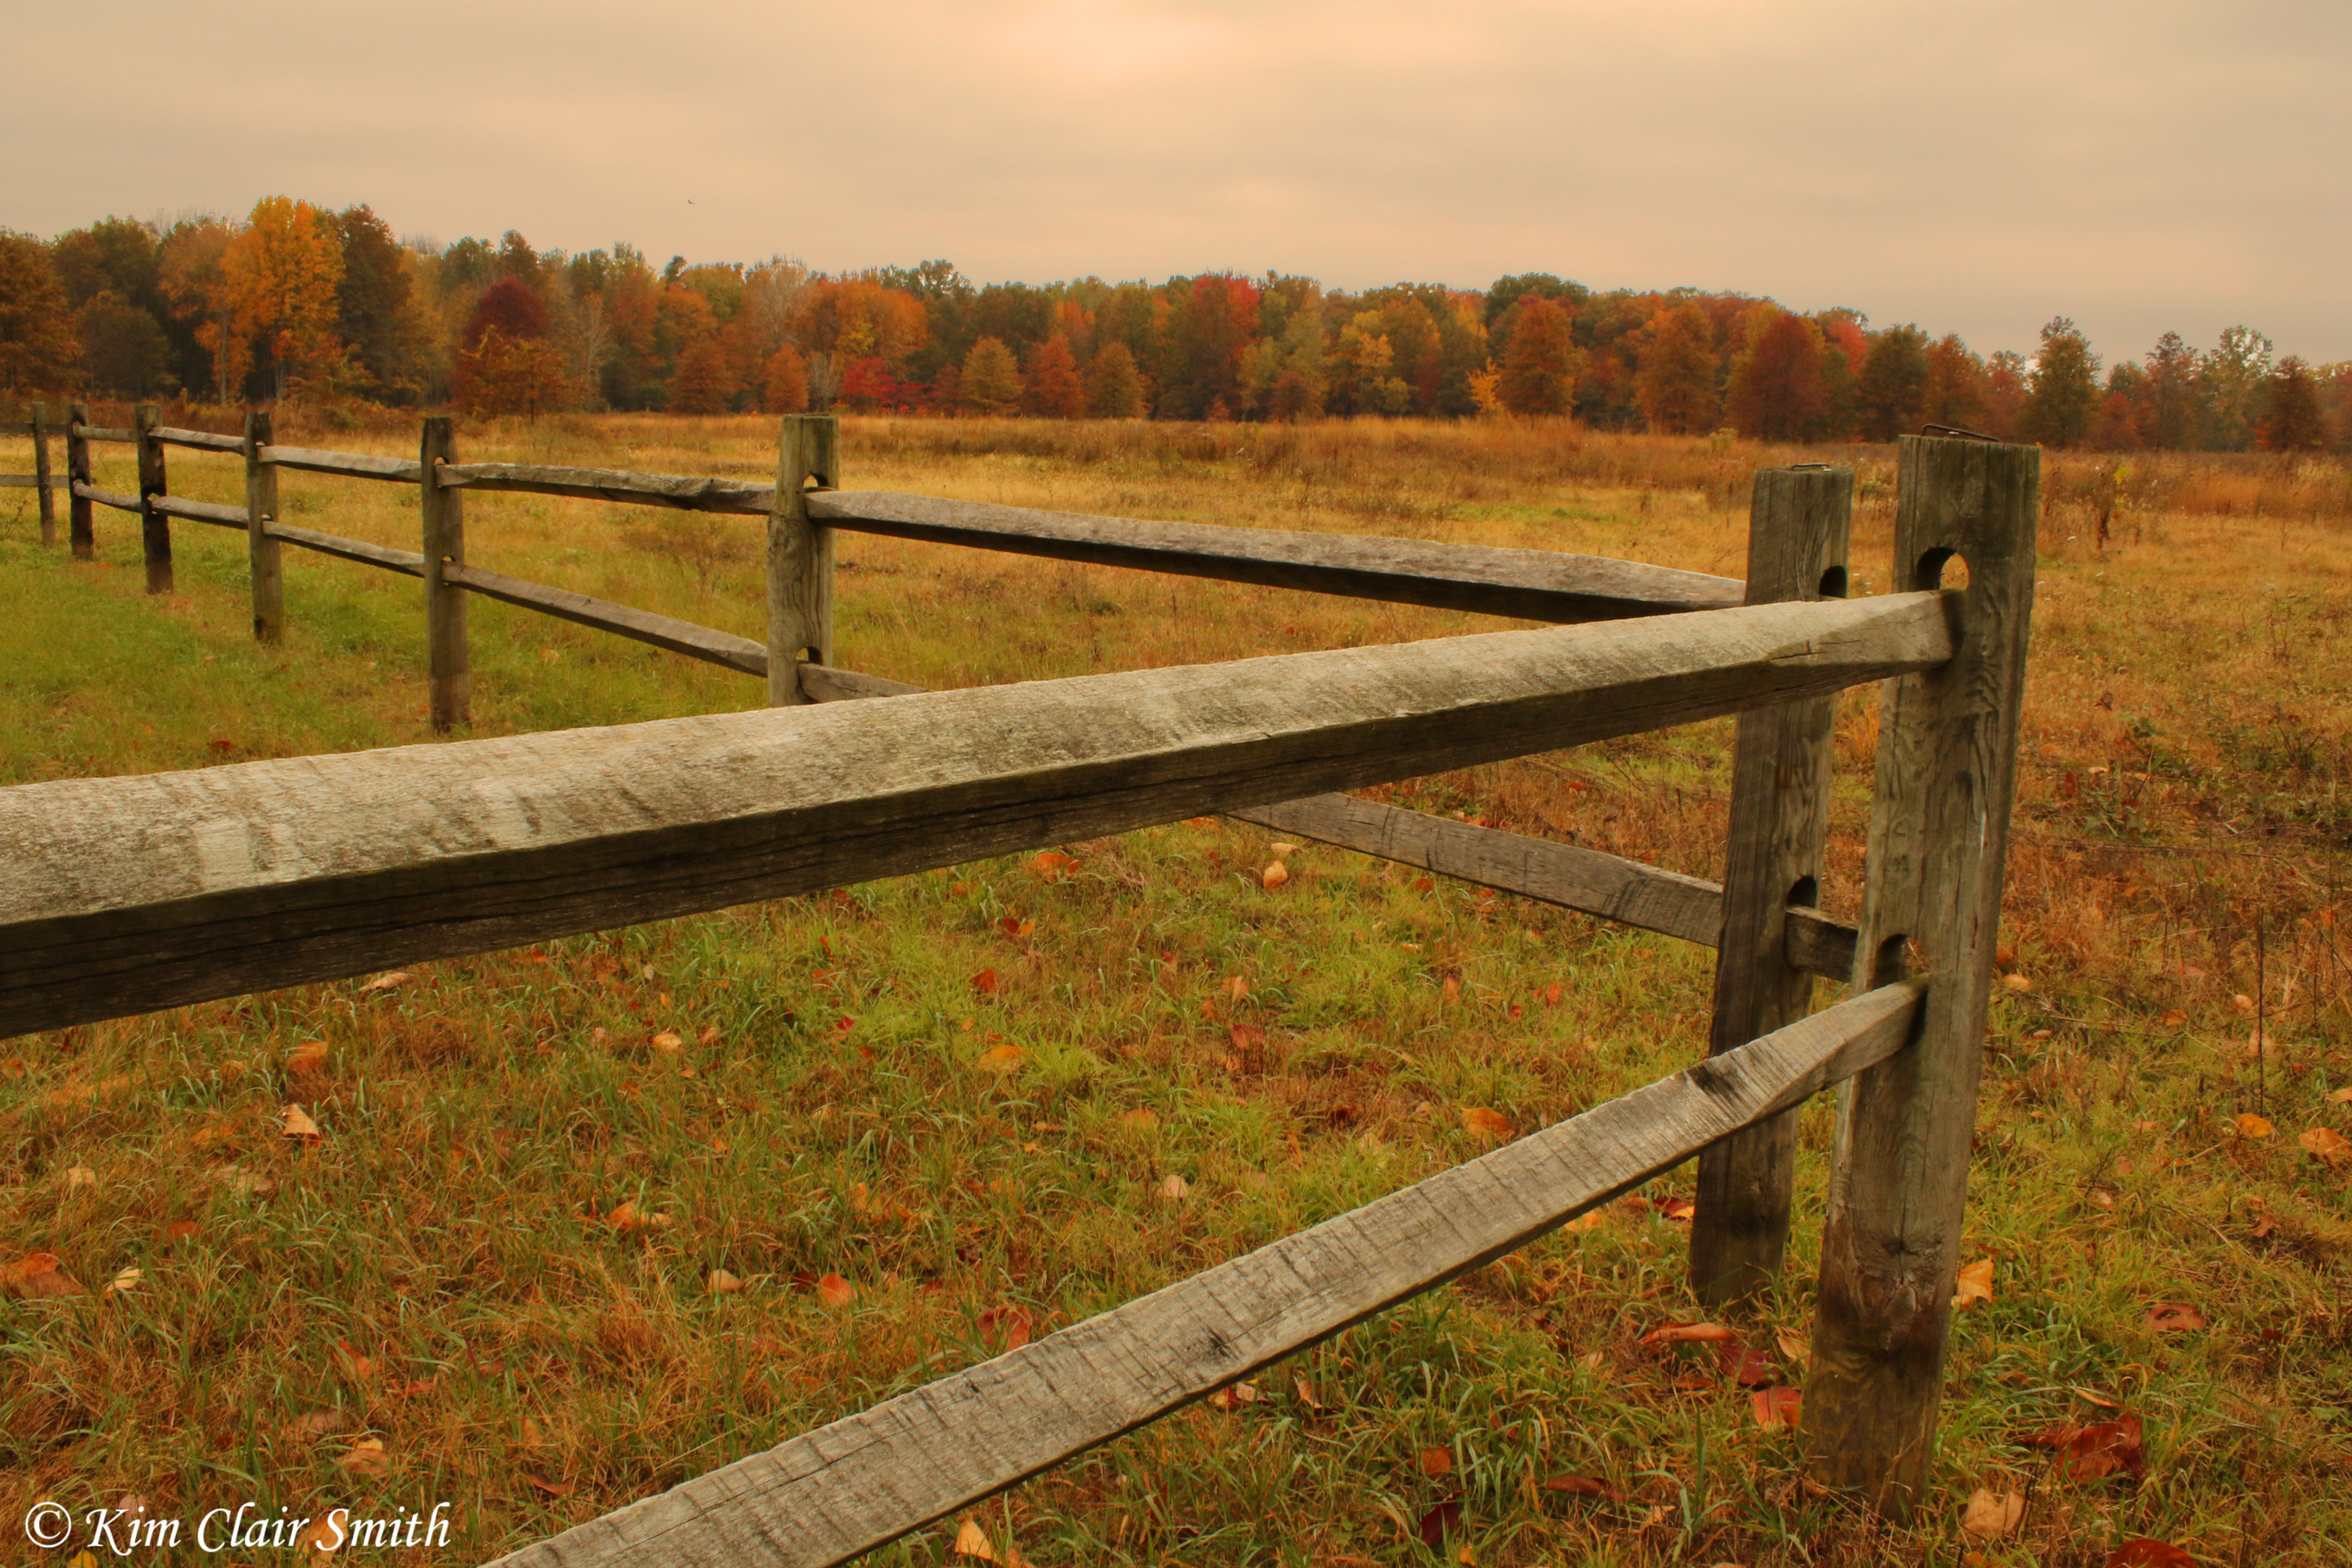 Fence and fall foliage